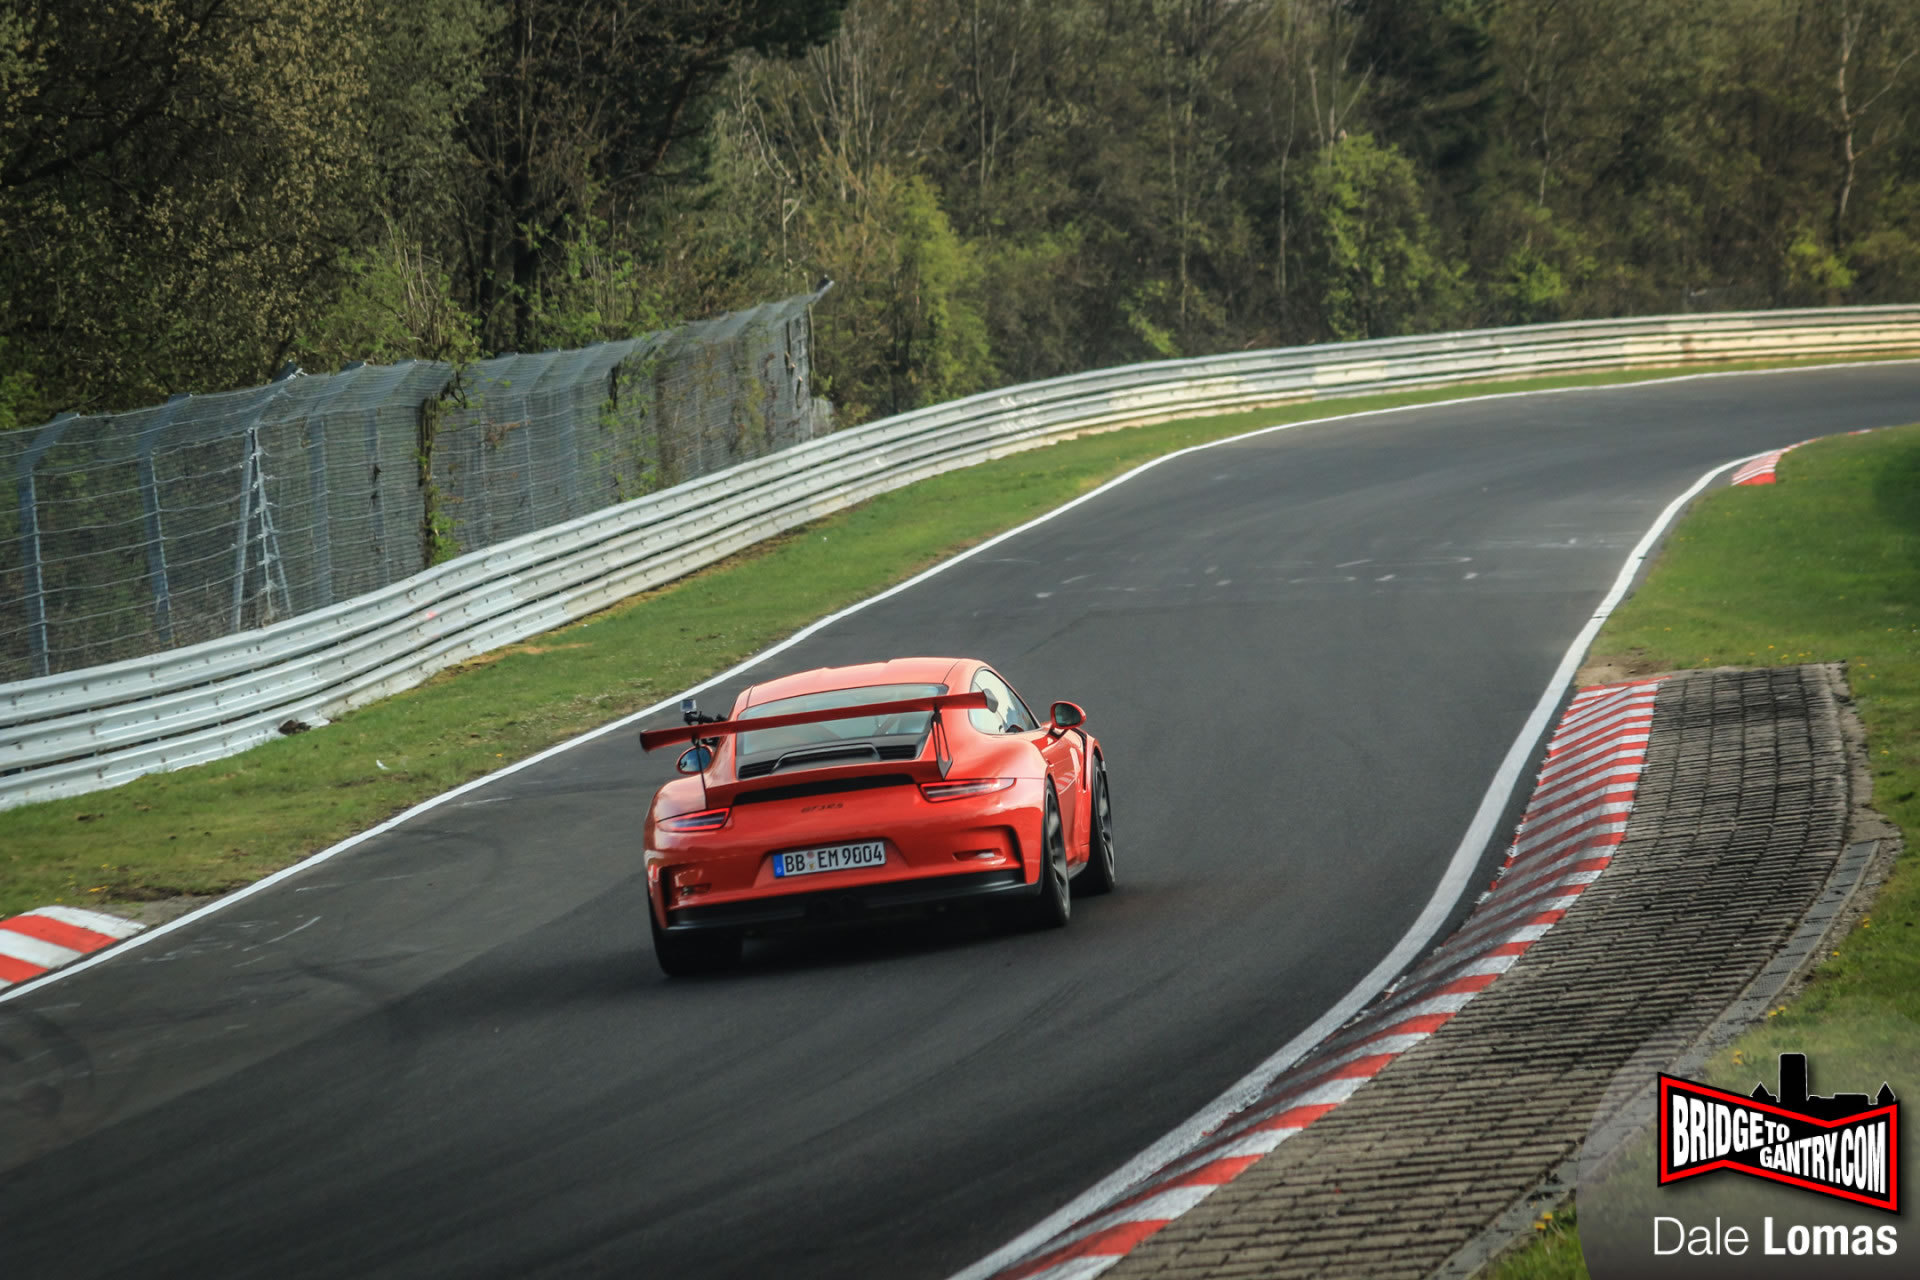 Mark Webber Drives 2016 Porsche 911 GT3 RS on Nurburgring ...